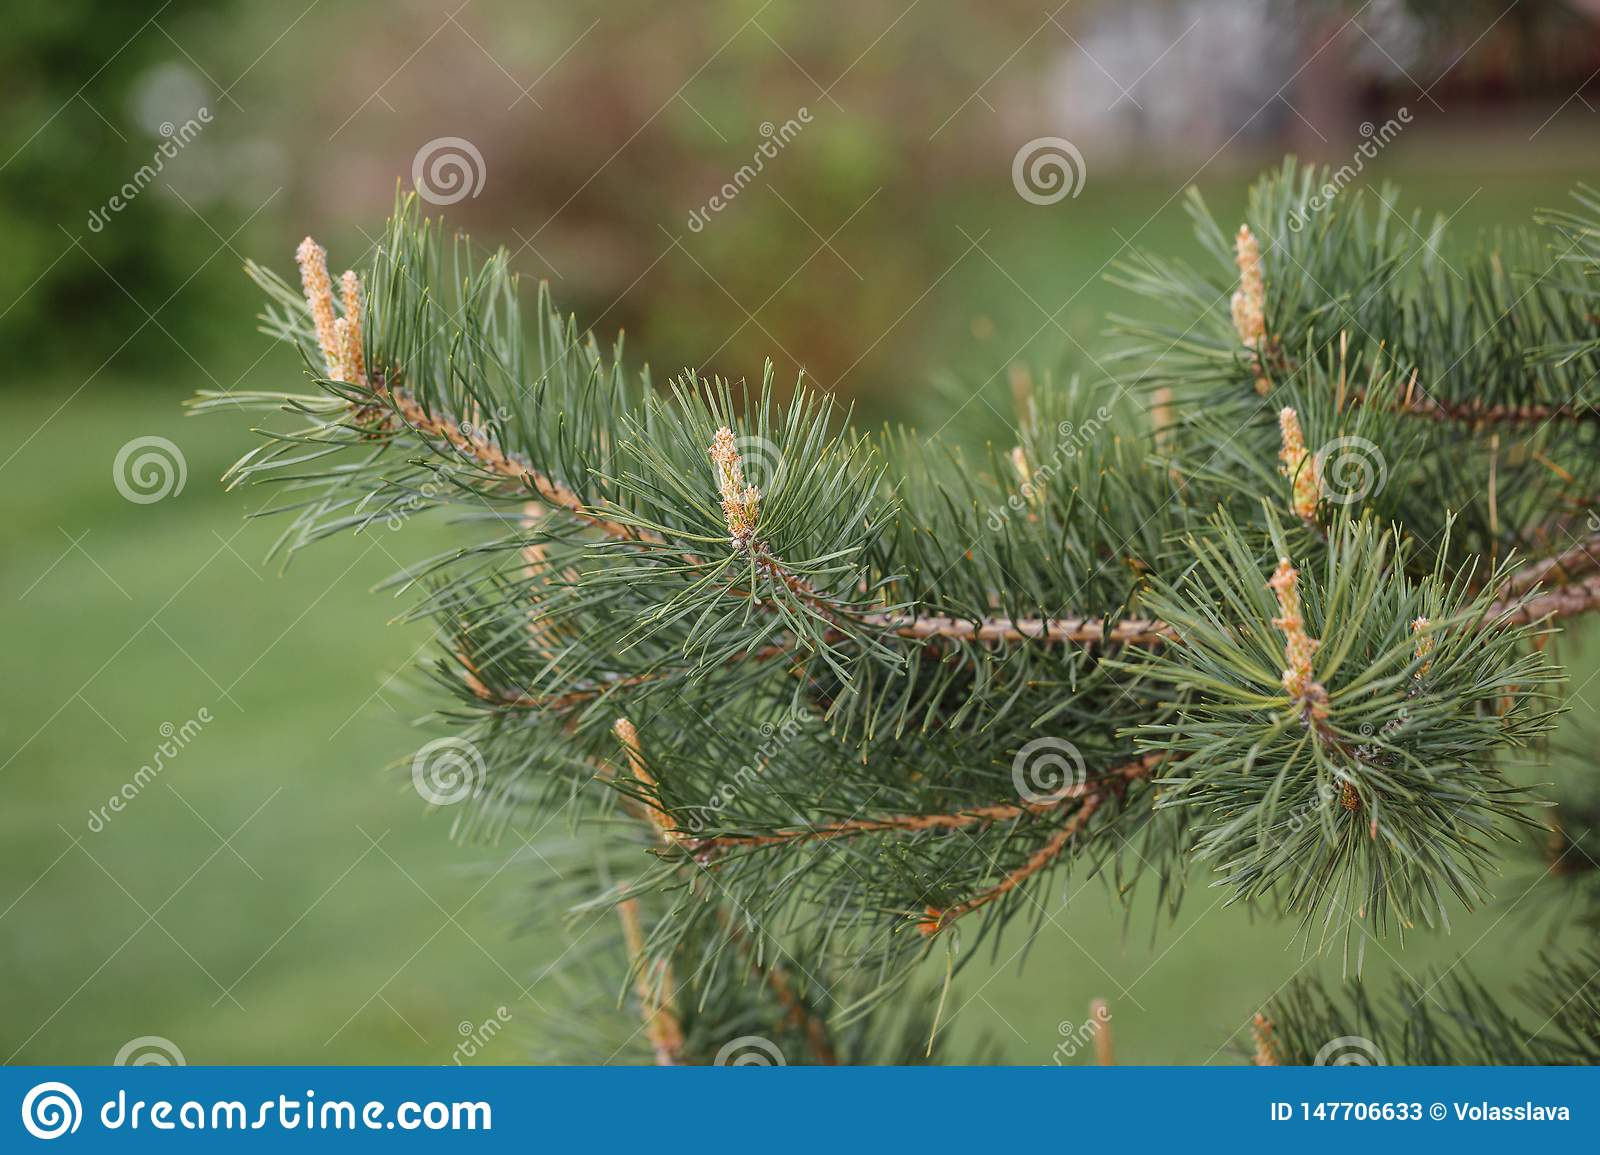 Pine buds on a branch